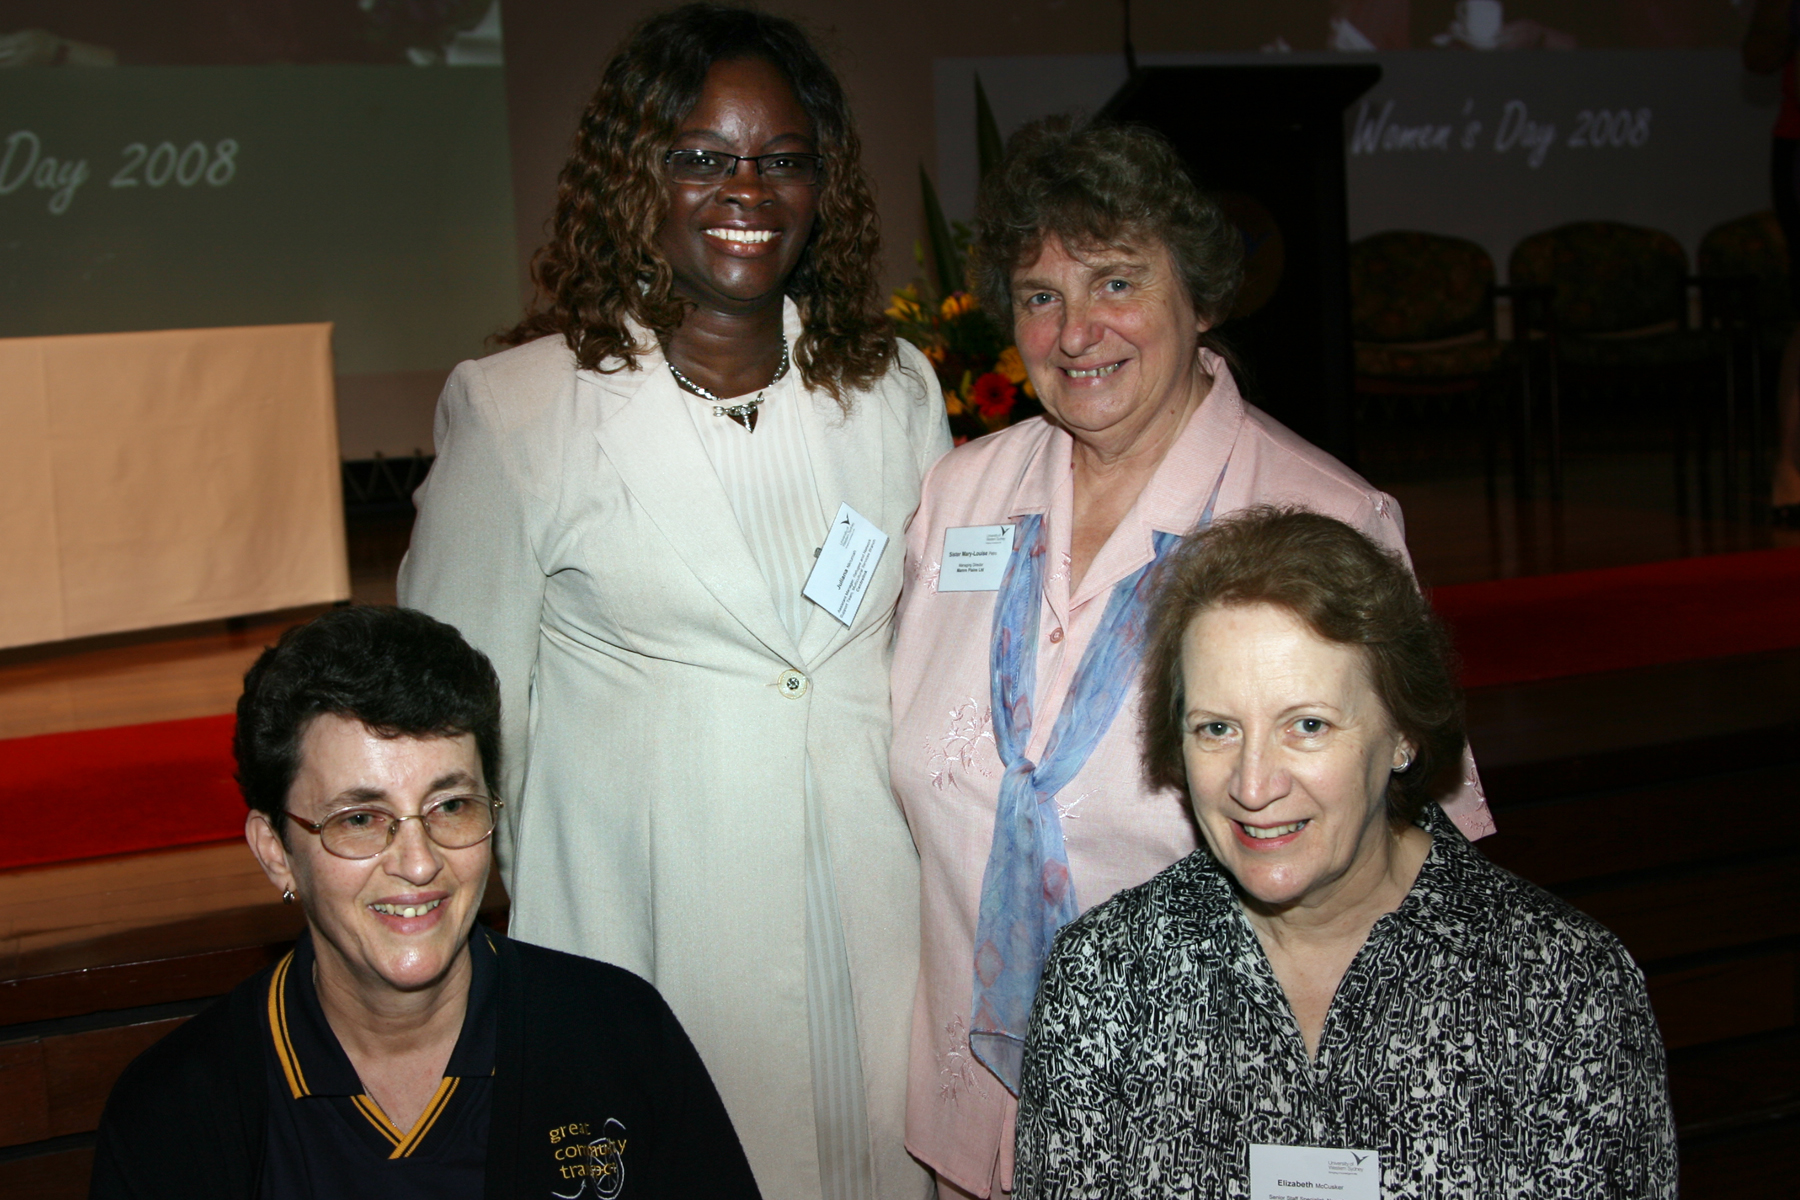 Past and present winners of UWS Women of the West Award. From L-R are Helen Walker OAM, Juliana Nkrumah, Sister Mary-Louise Petro and Dr Elizabeth McCusker.